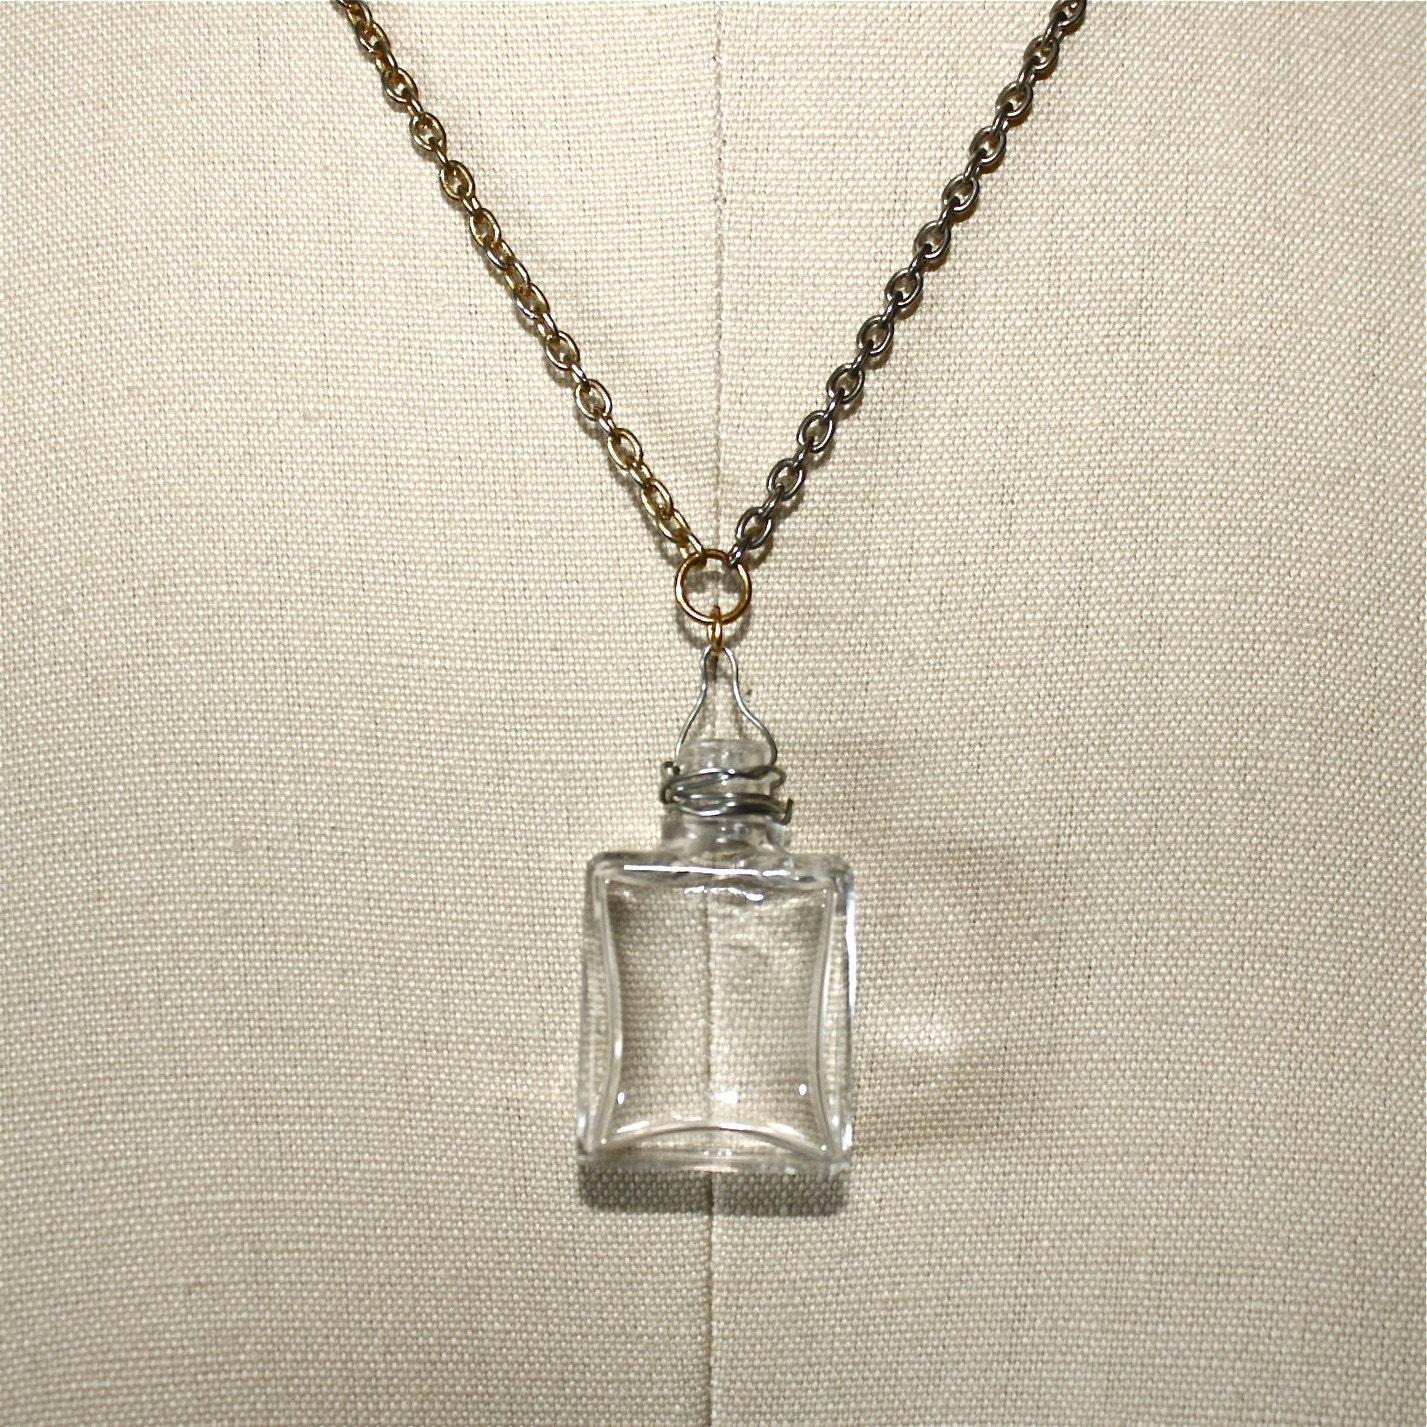 vintage glass bottle pendant necklace by salvagelife